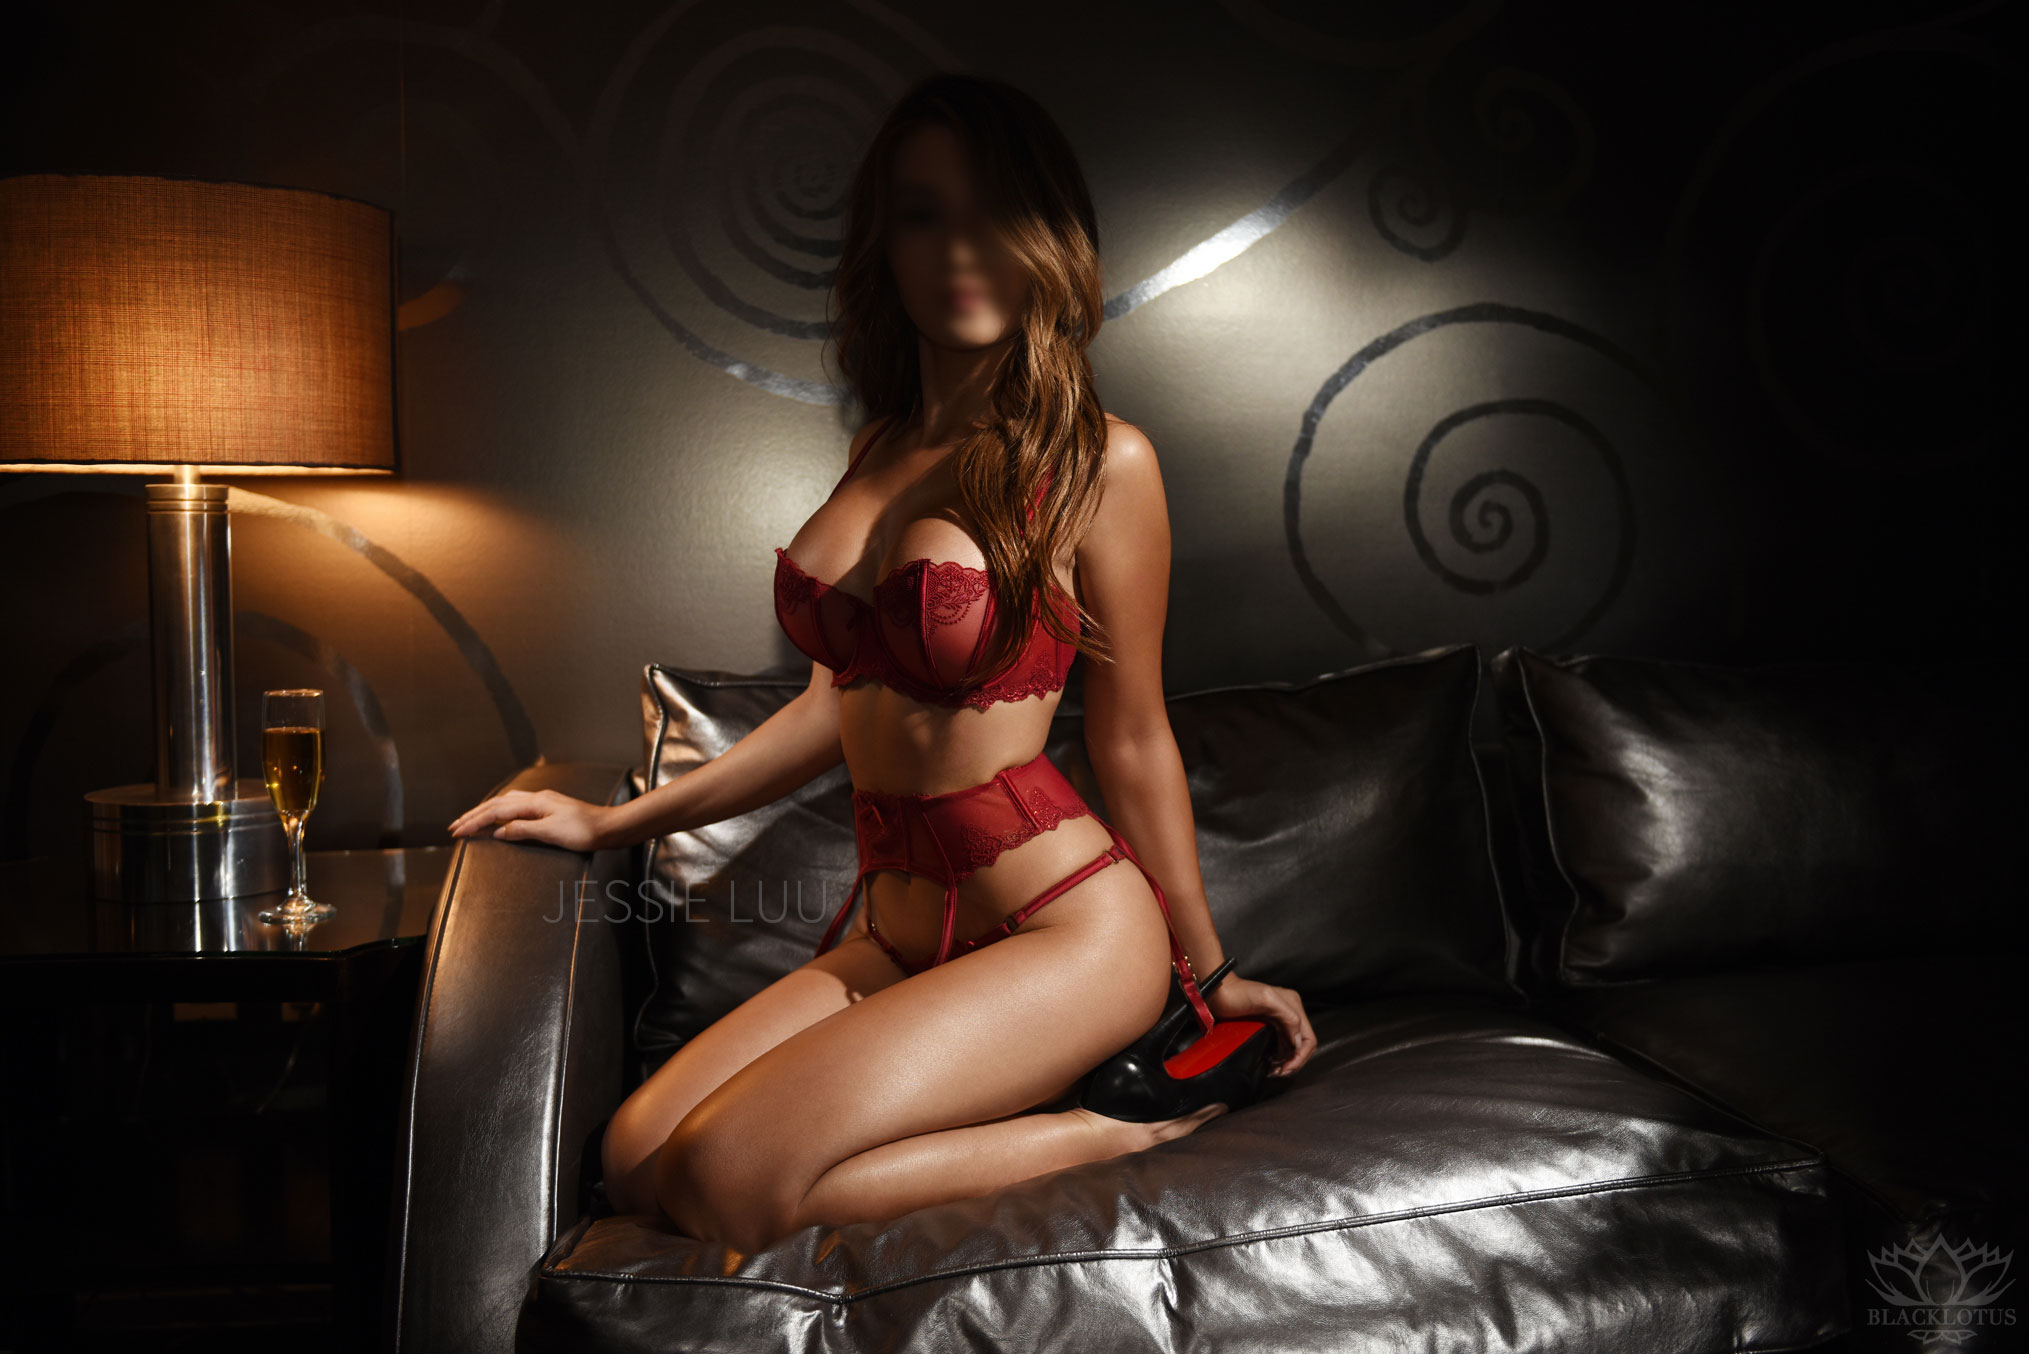 independent-asian-escort-red-lingerie.jpg